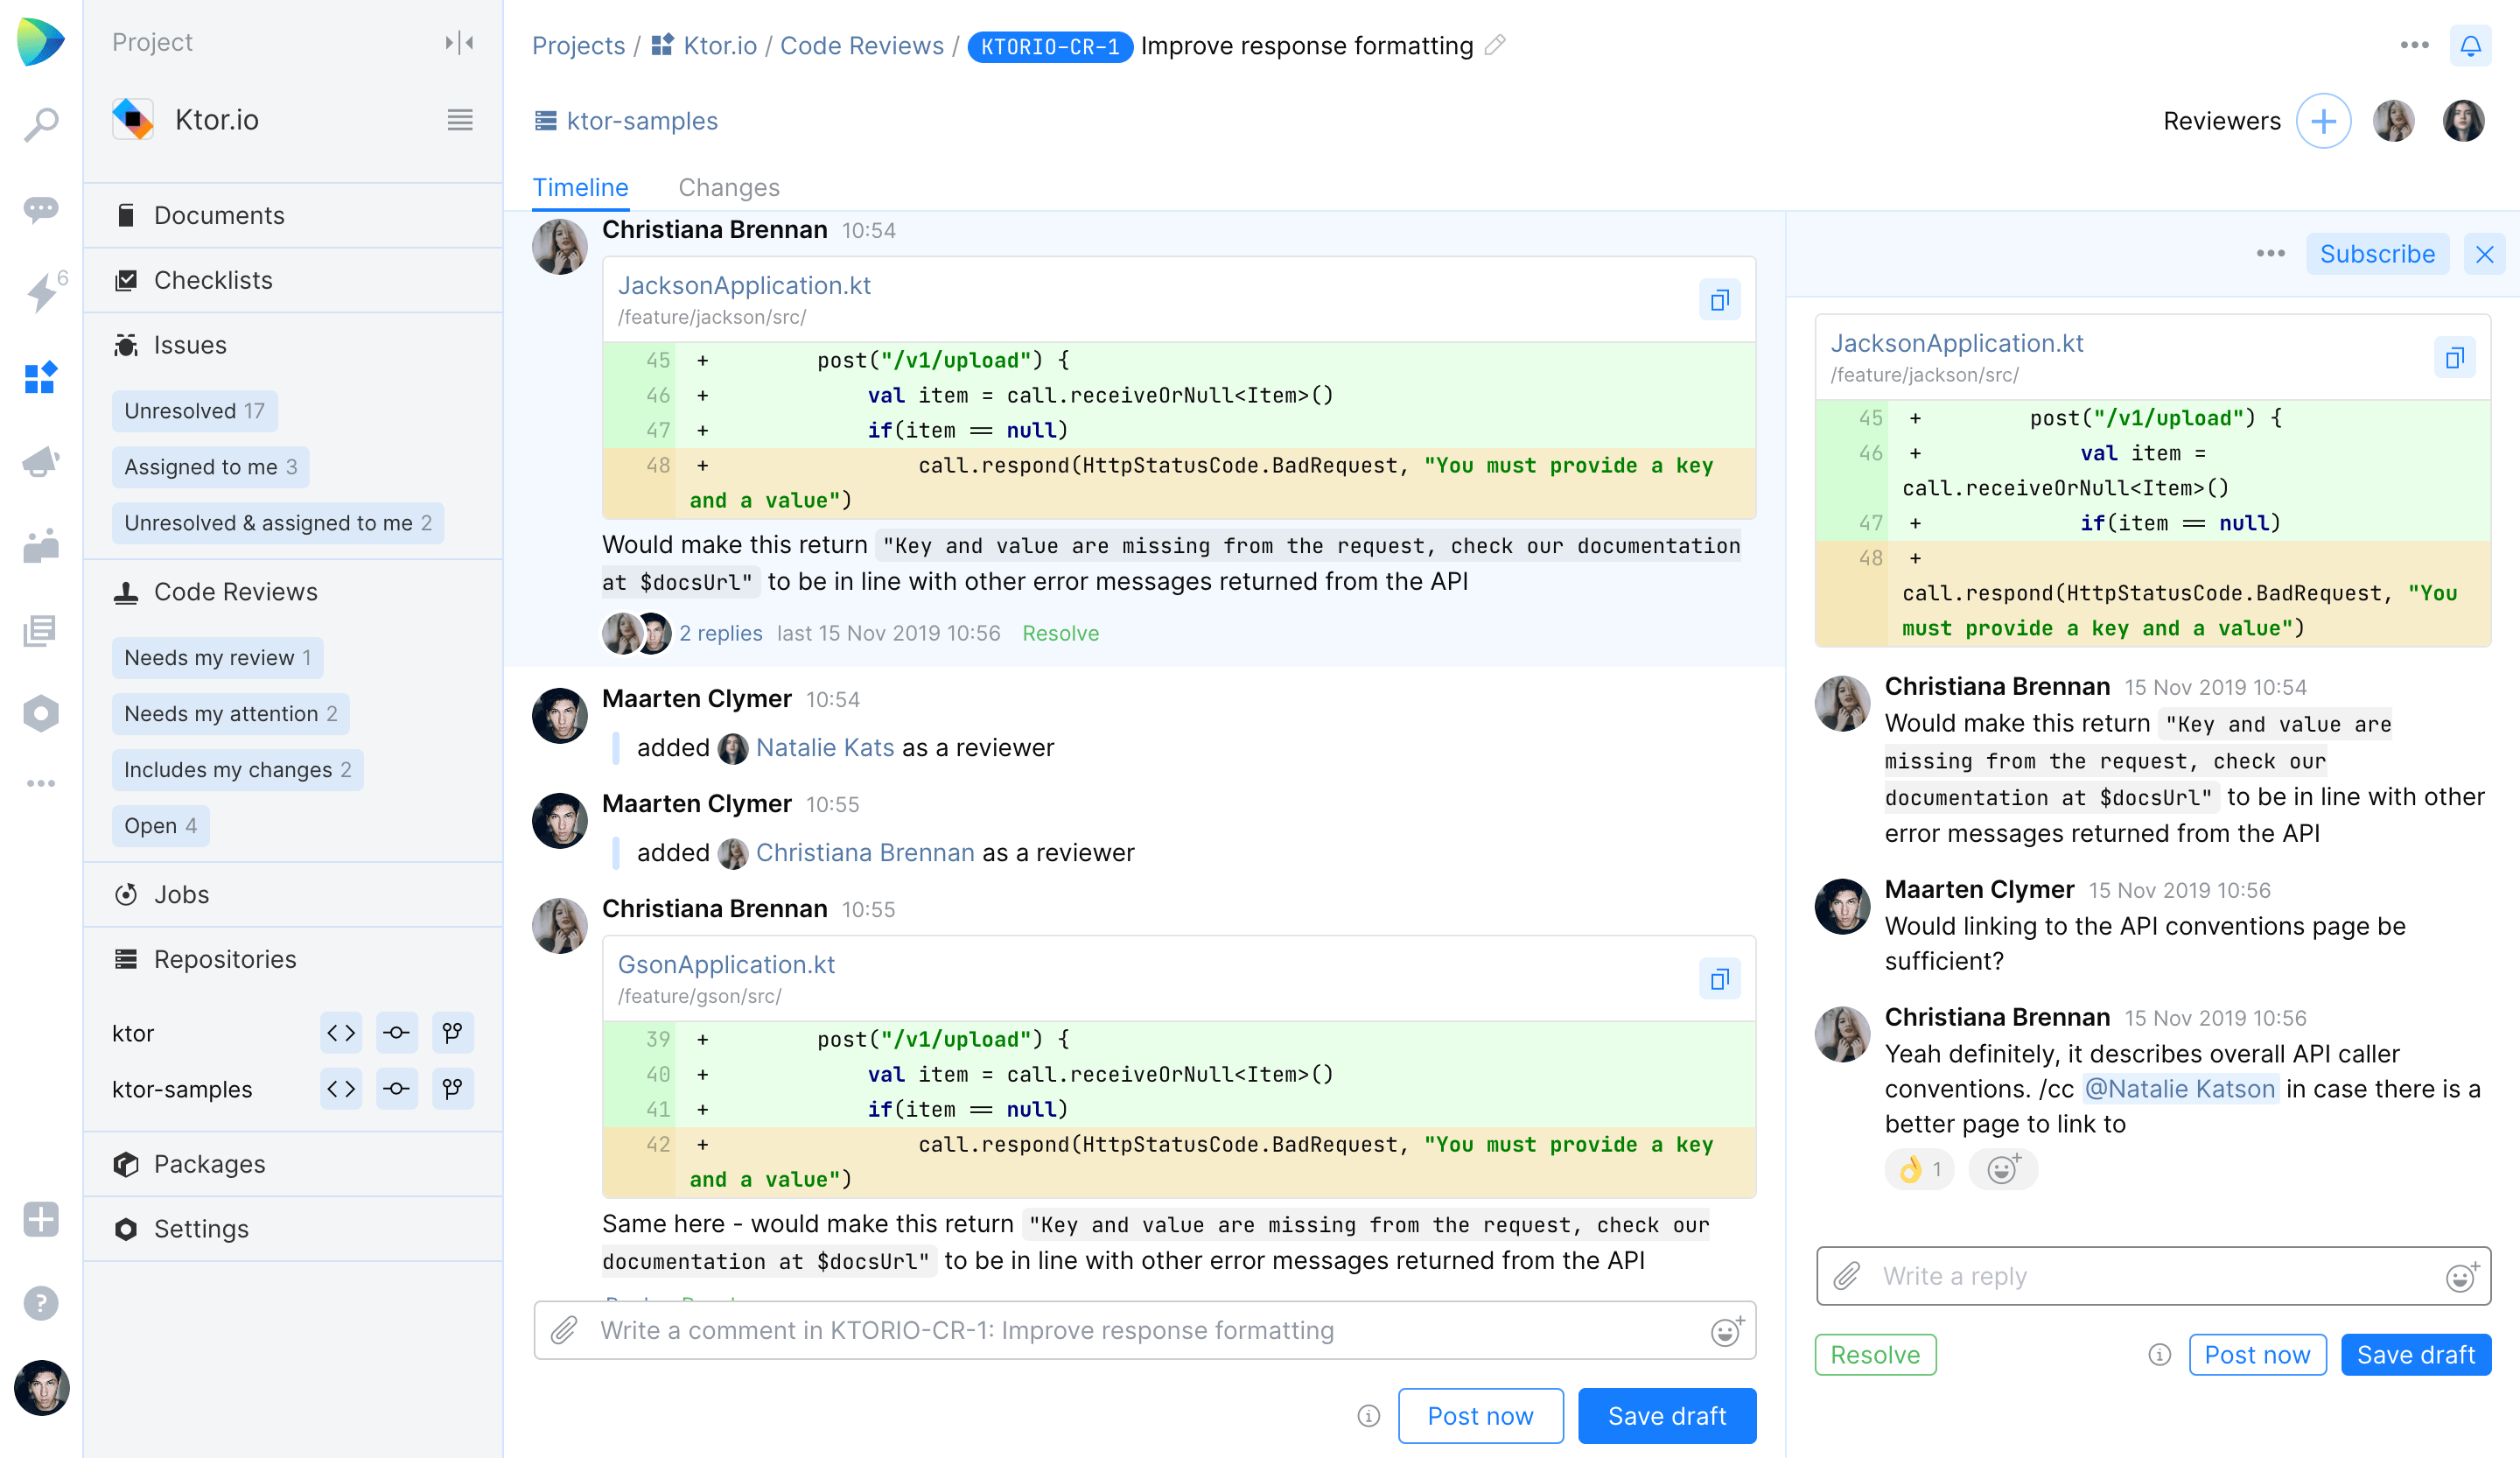 Ping-pong code review process